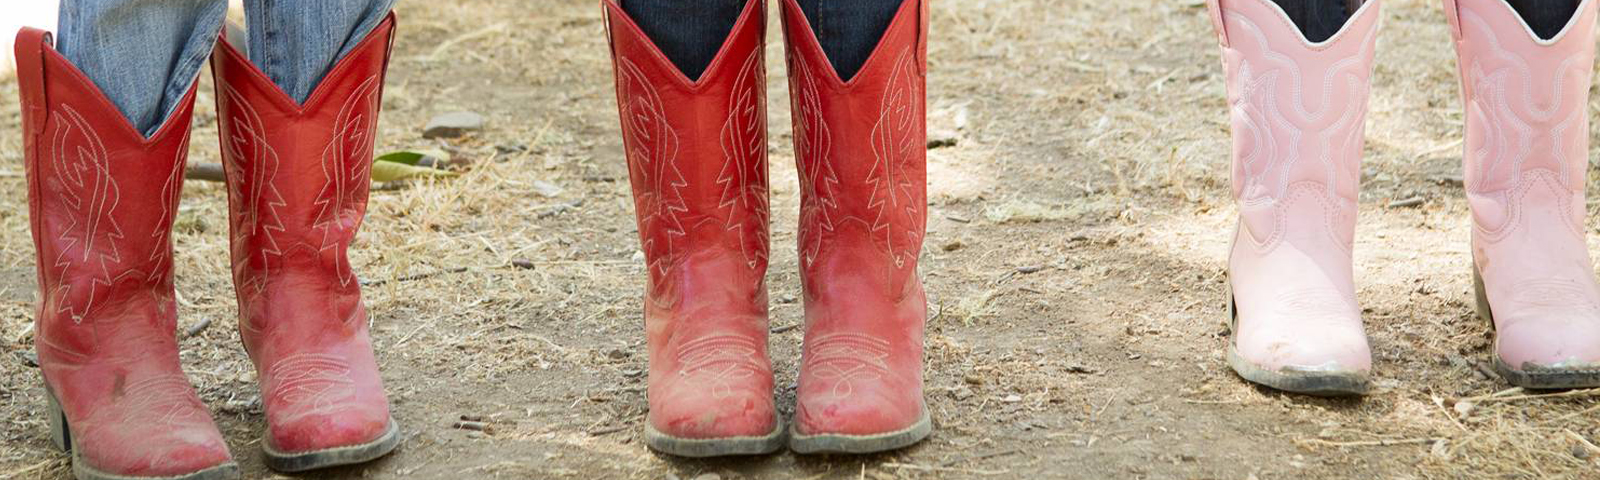 Three children's cowboy boots in red and pink